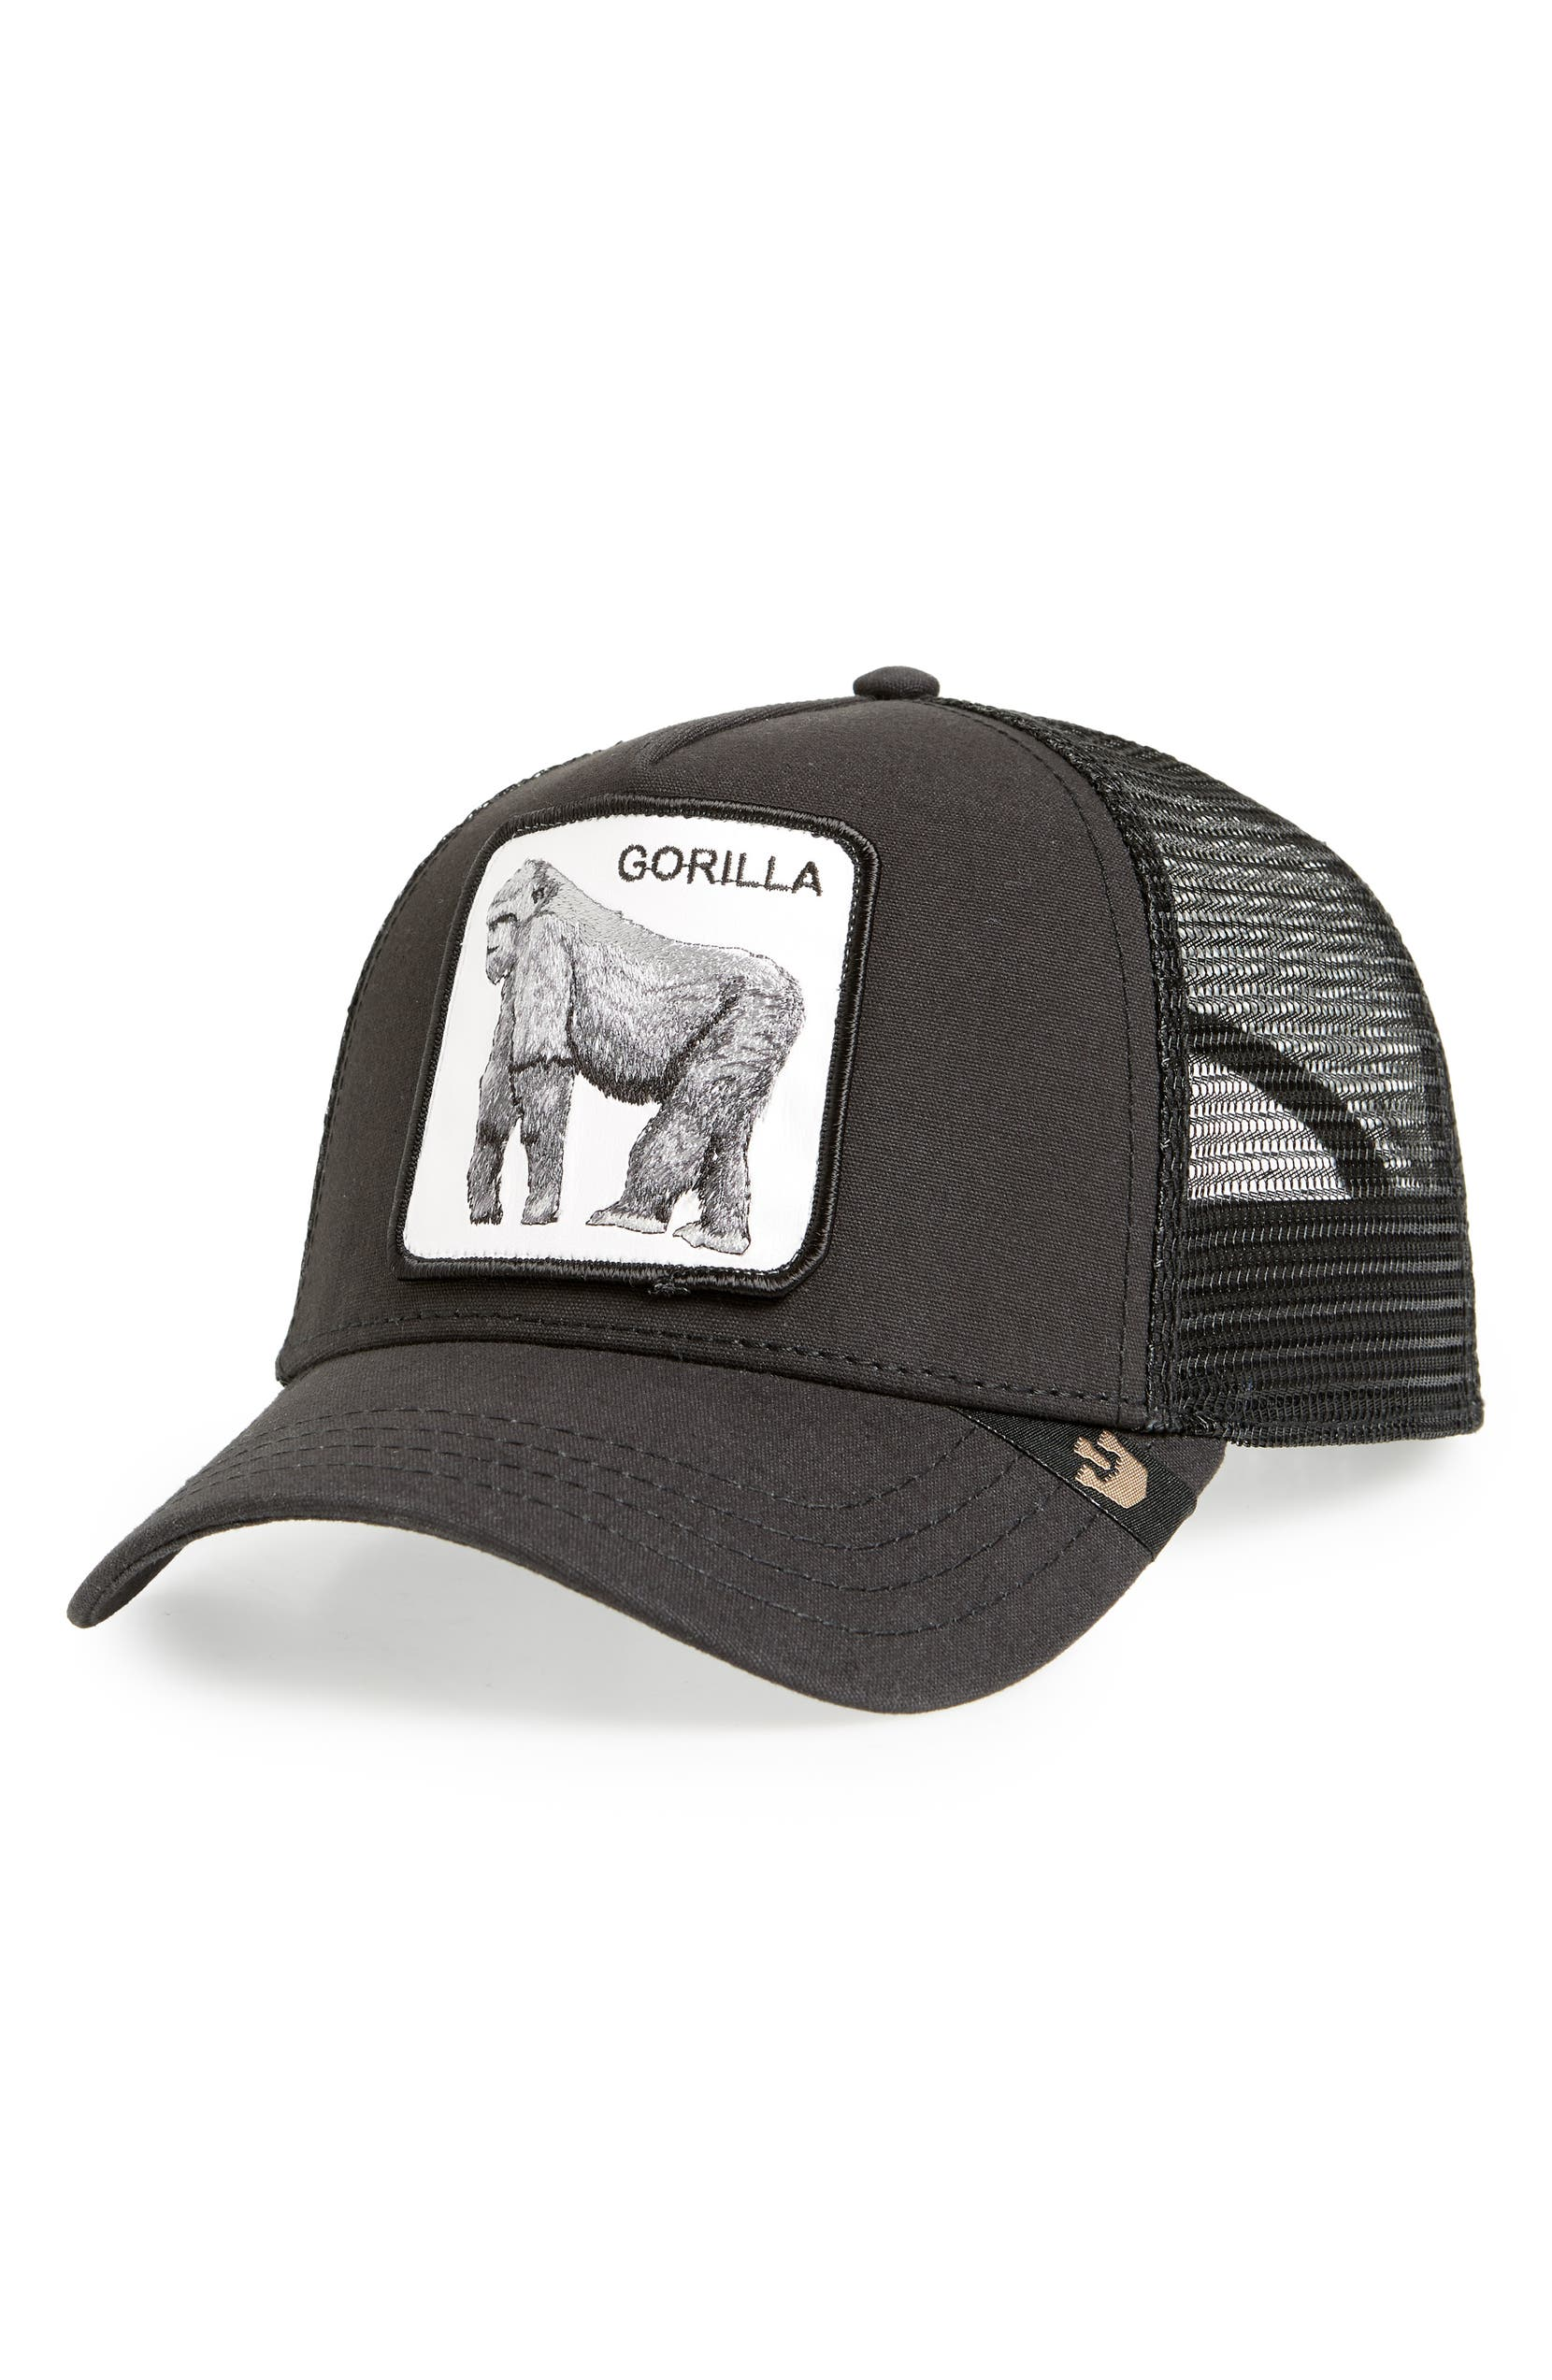 Goorin Brothers King Of The Jungle Trucker Hat  68bf6c3d291